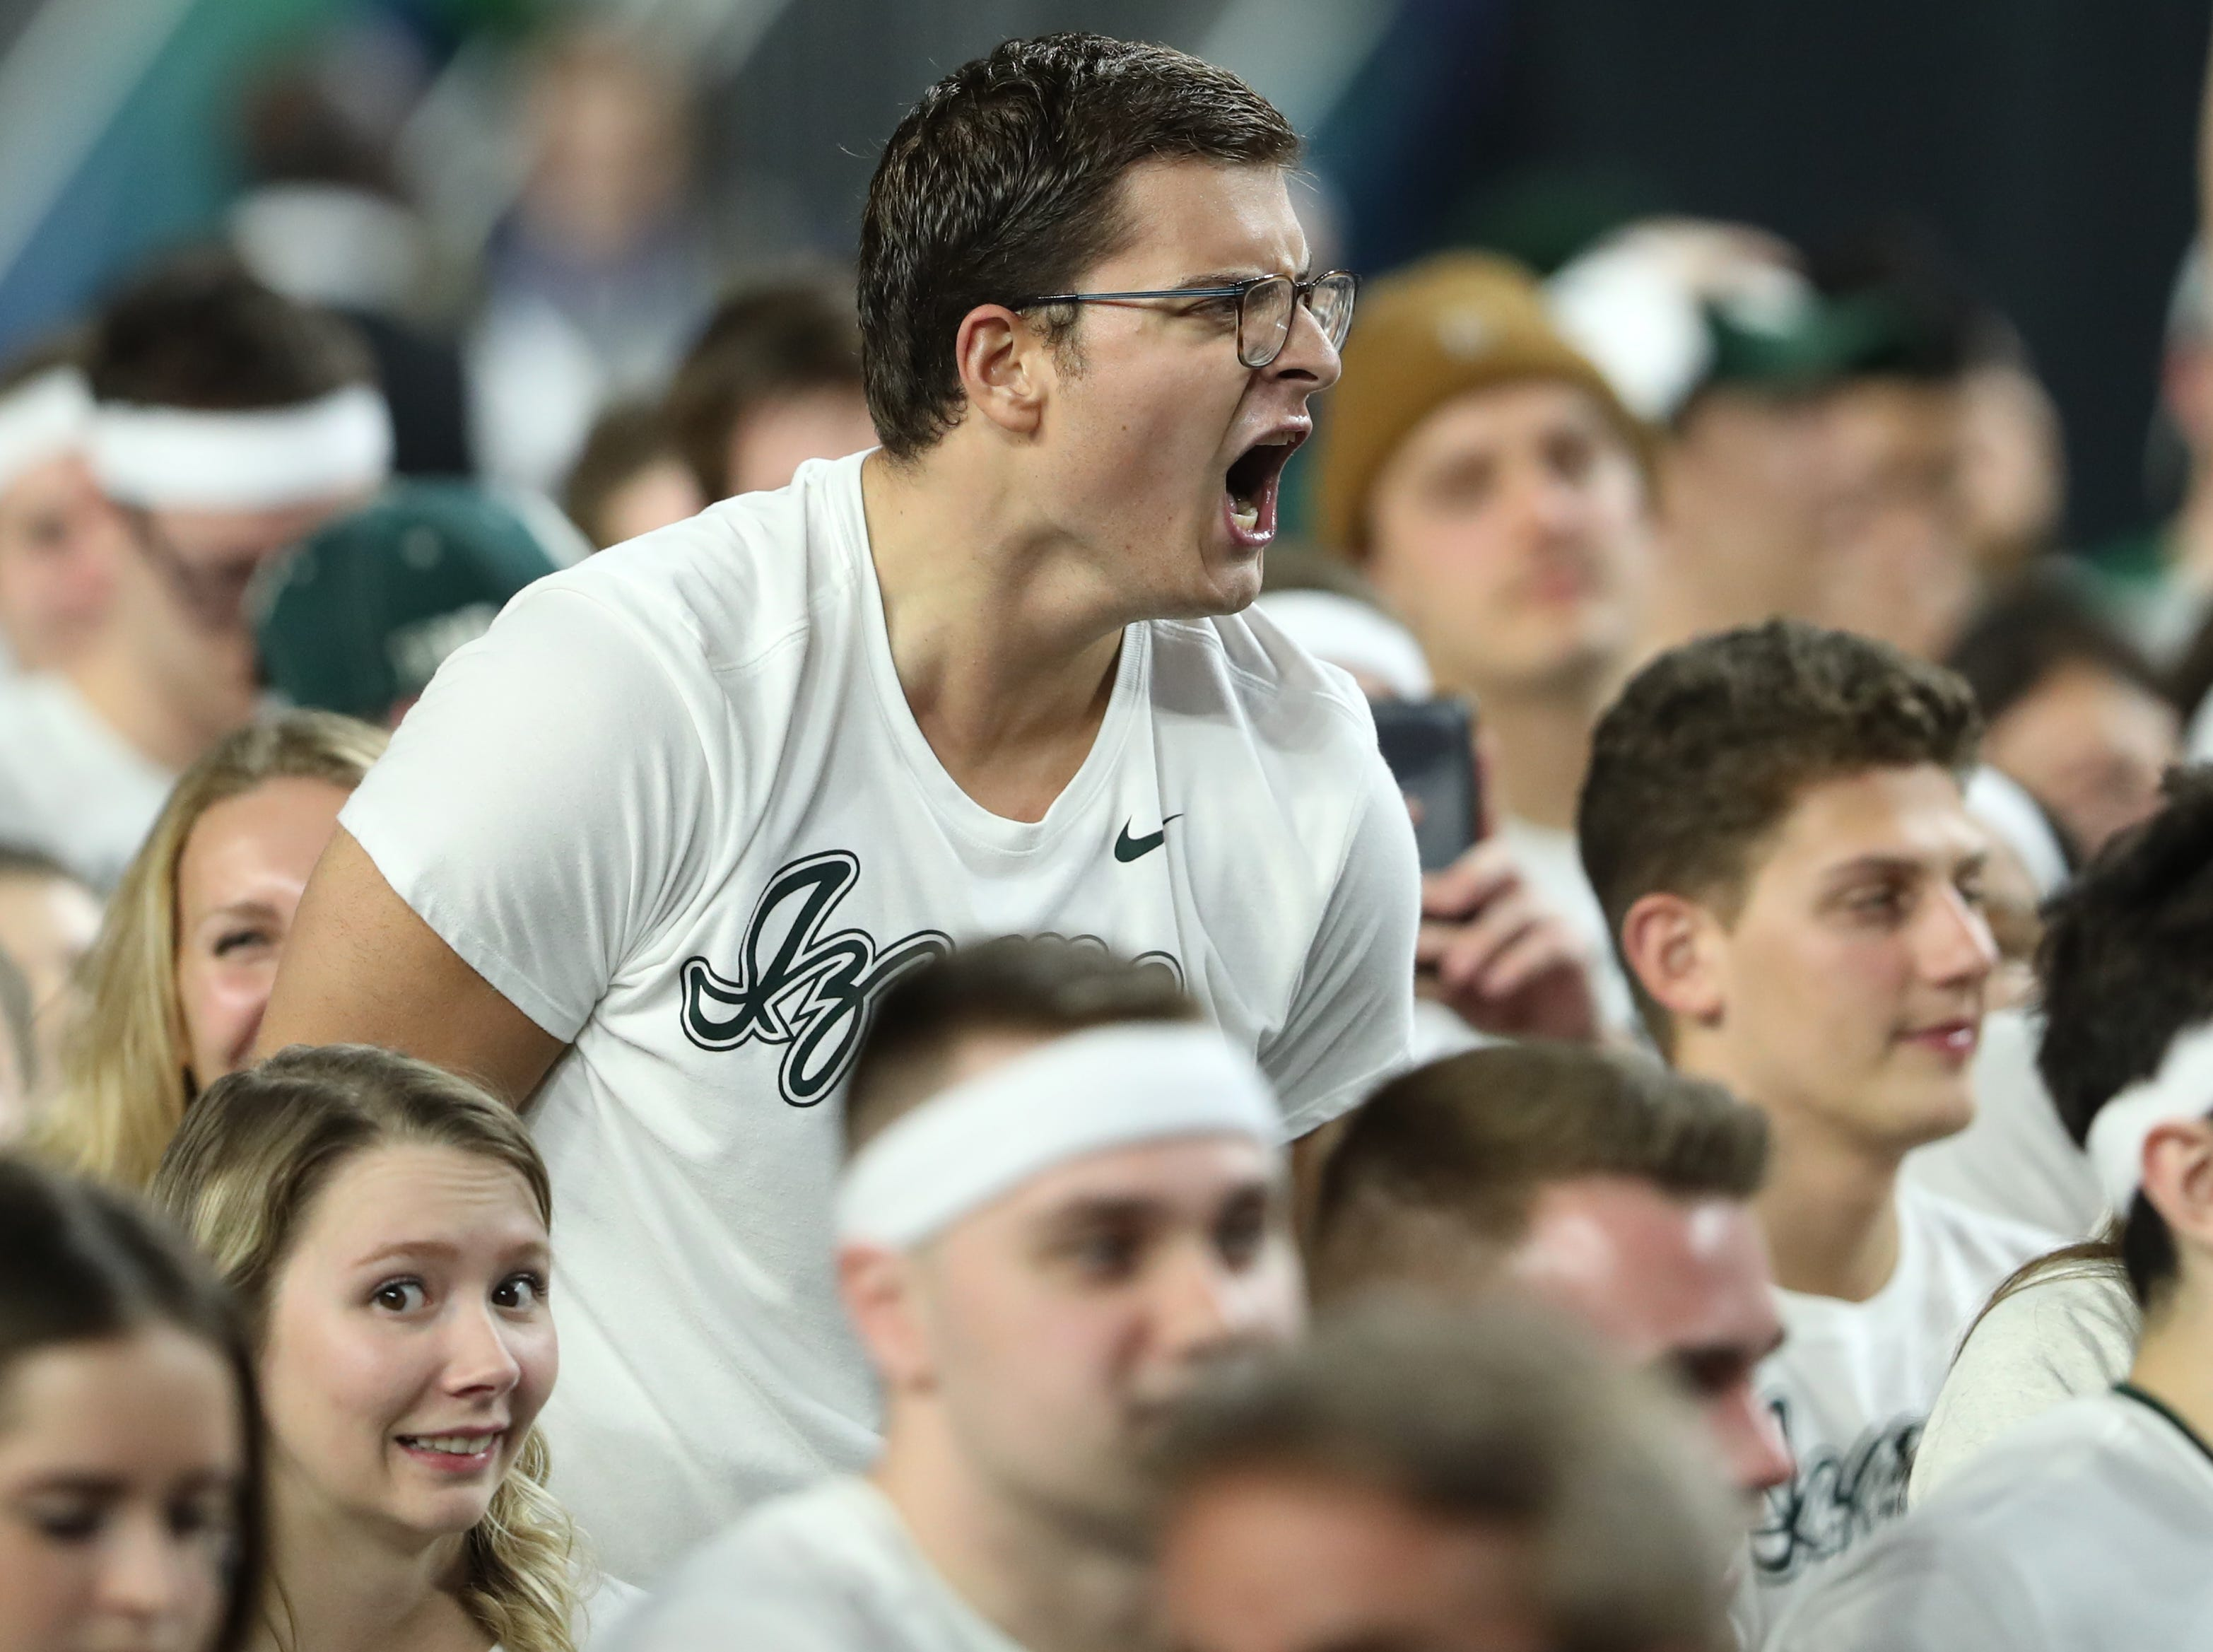 A Michigan State fan reacts in the second half of the Spartan's Final Four game against Texas Tech at U.S. Bank Stadium in Minneapolis, Minnesota on Saturday, April 06, 2019.